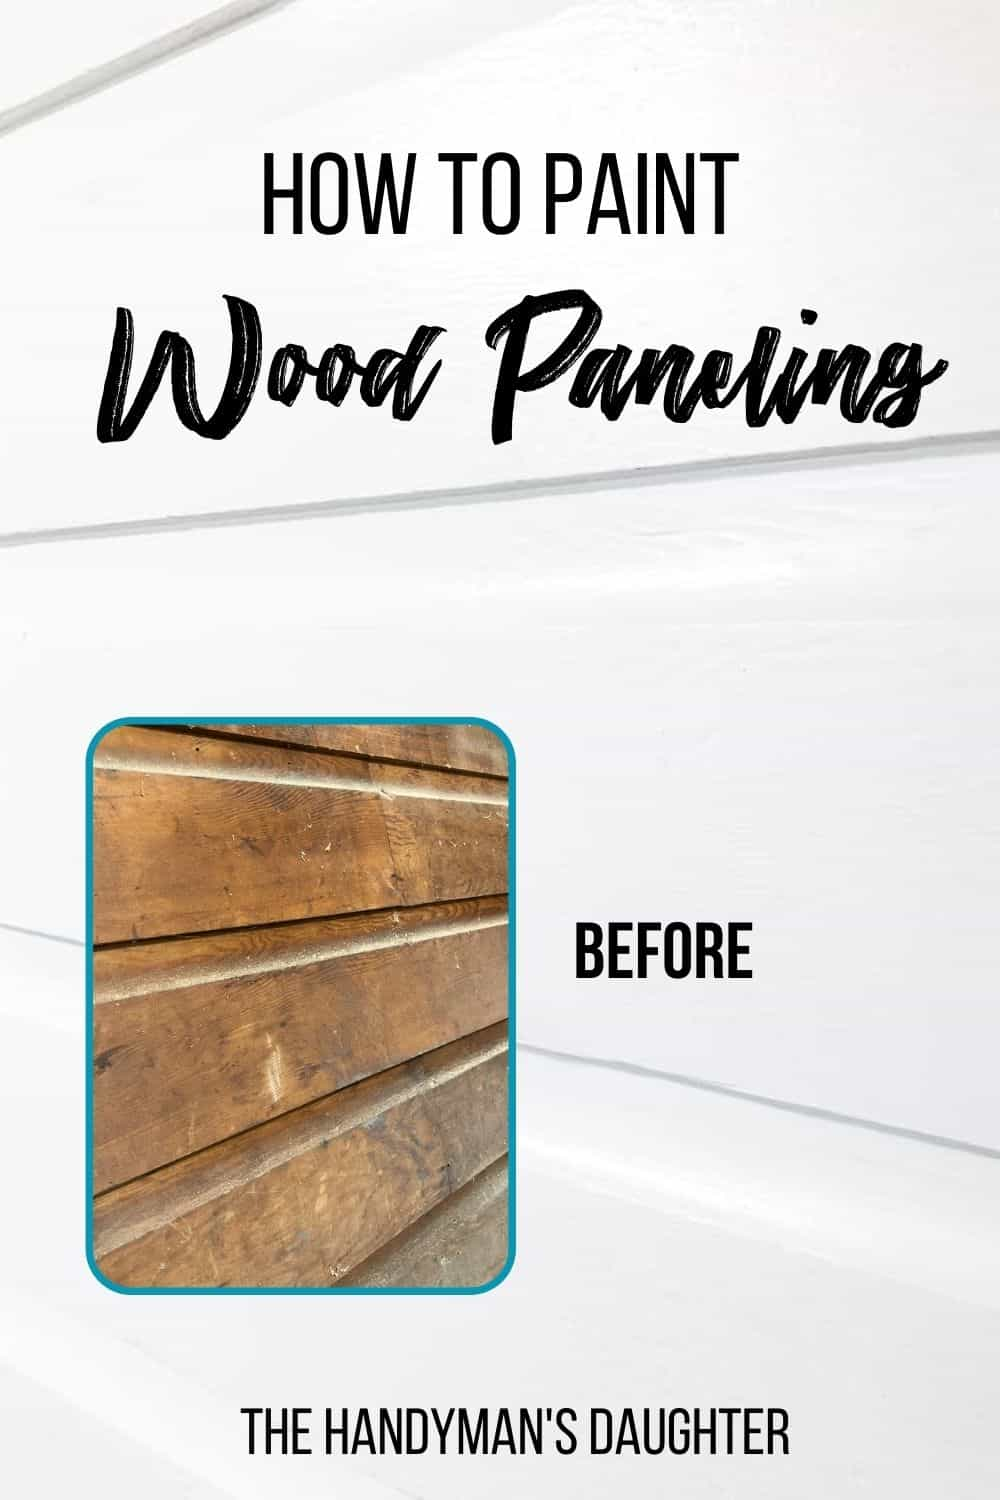 painted wood paneling with before image and text overlay